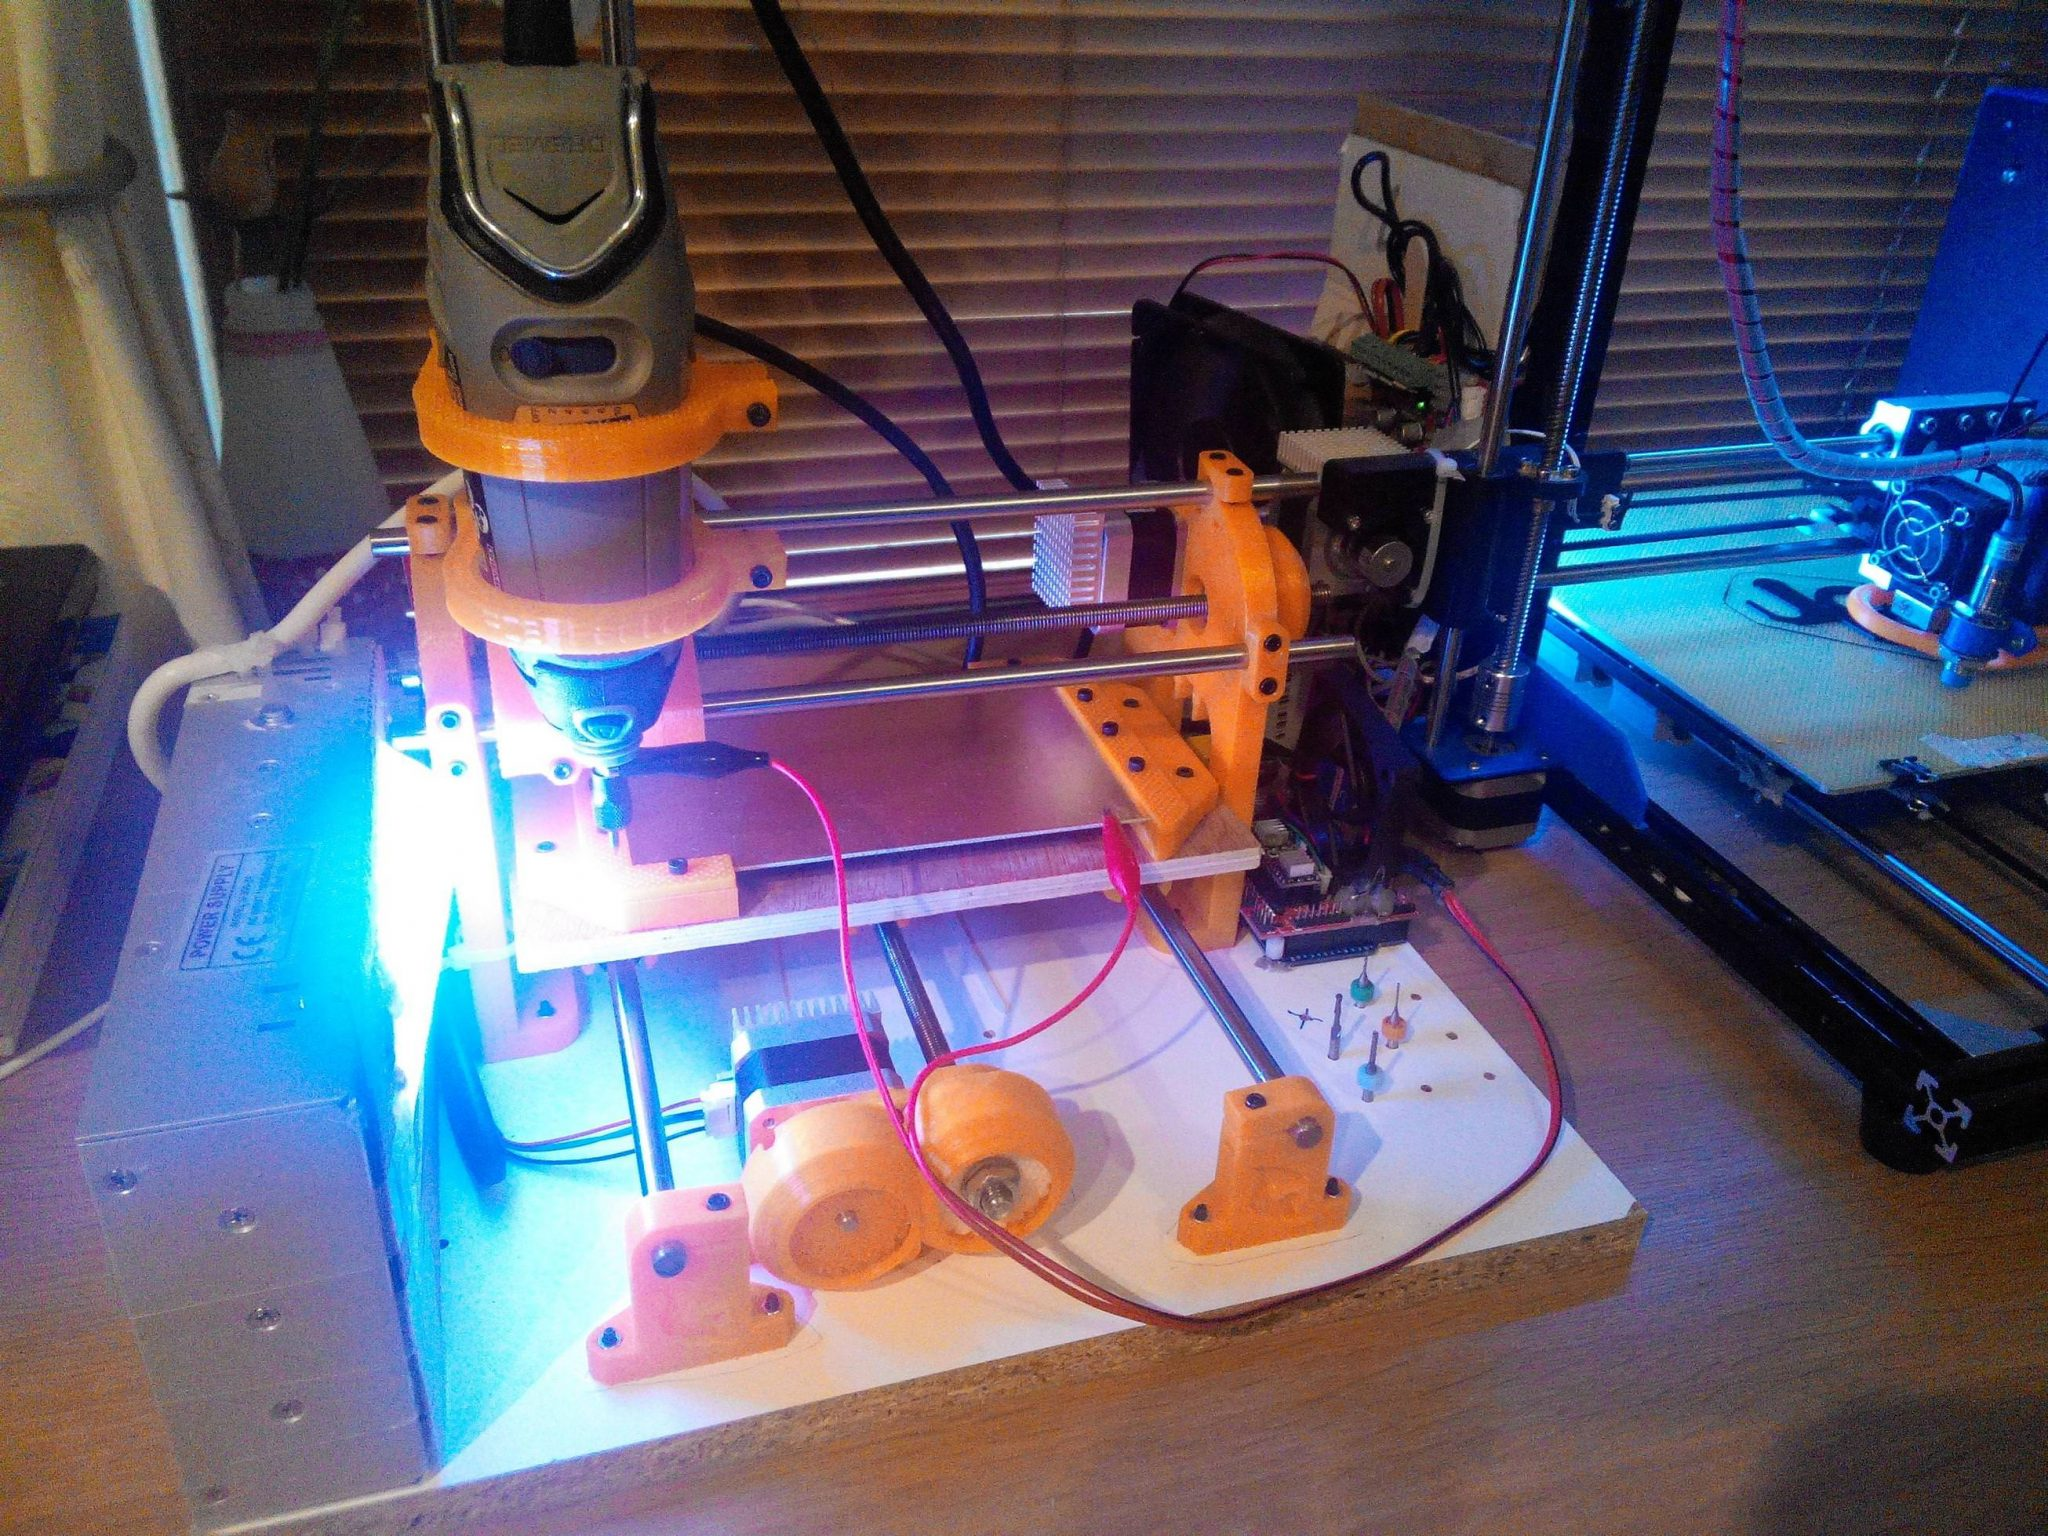 Hobbyist 3D prints open source CNC machine for under $200 - 3D